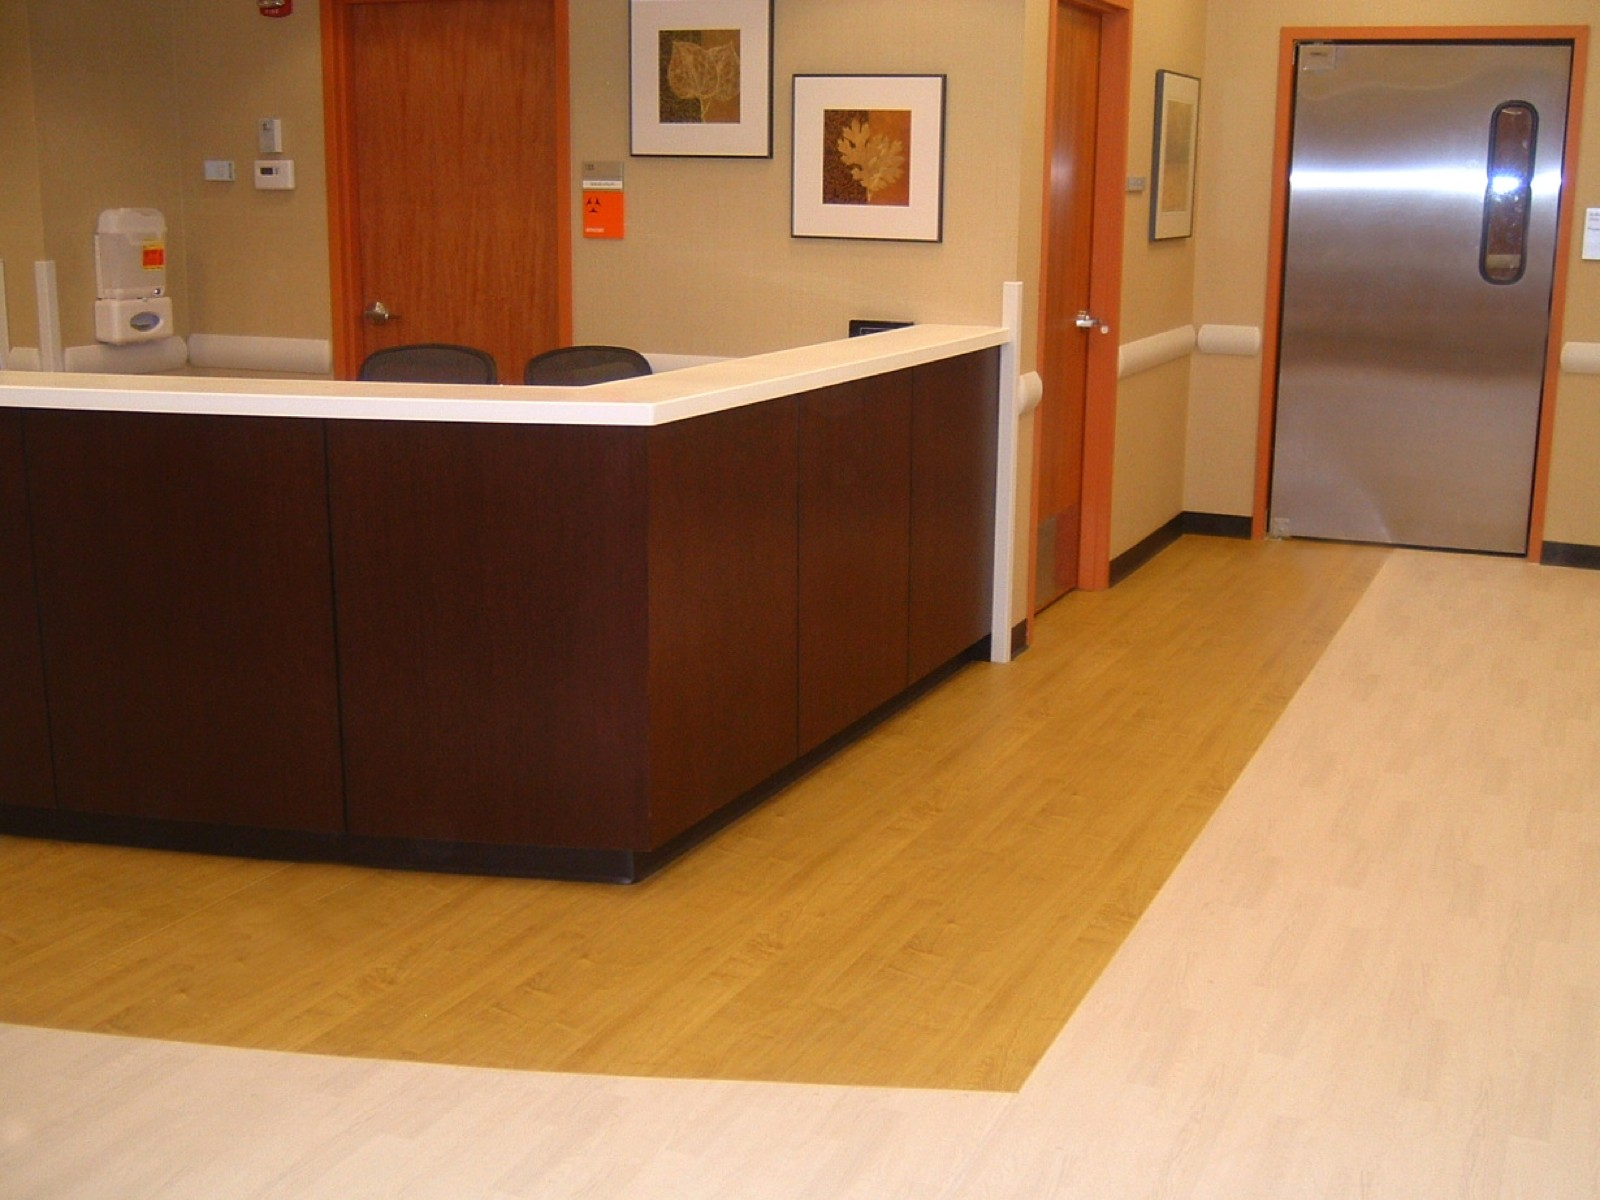 Specialty Surgical Center | Flooring Installation System